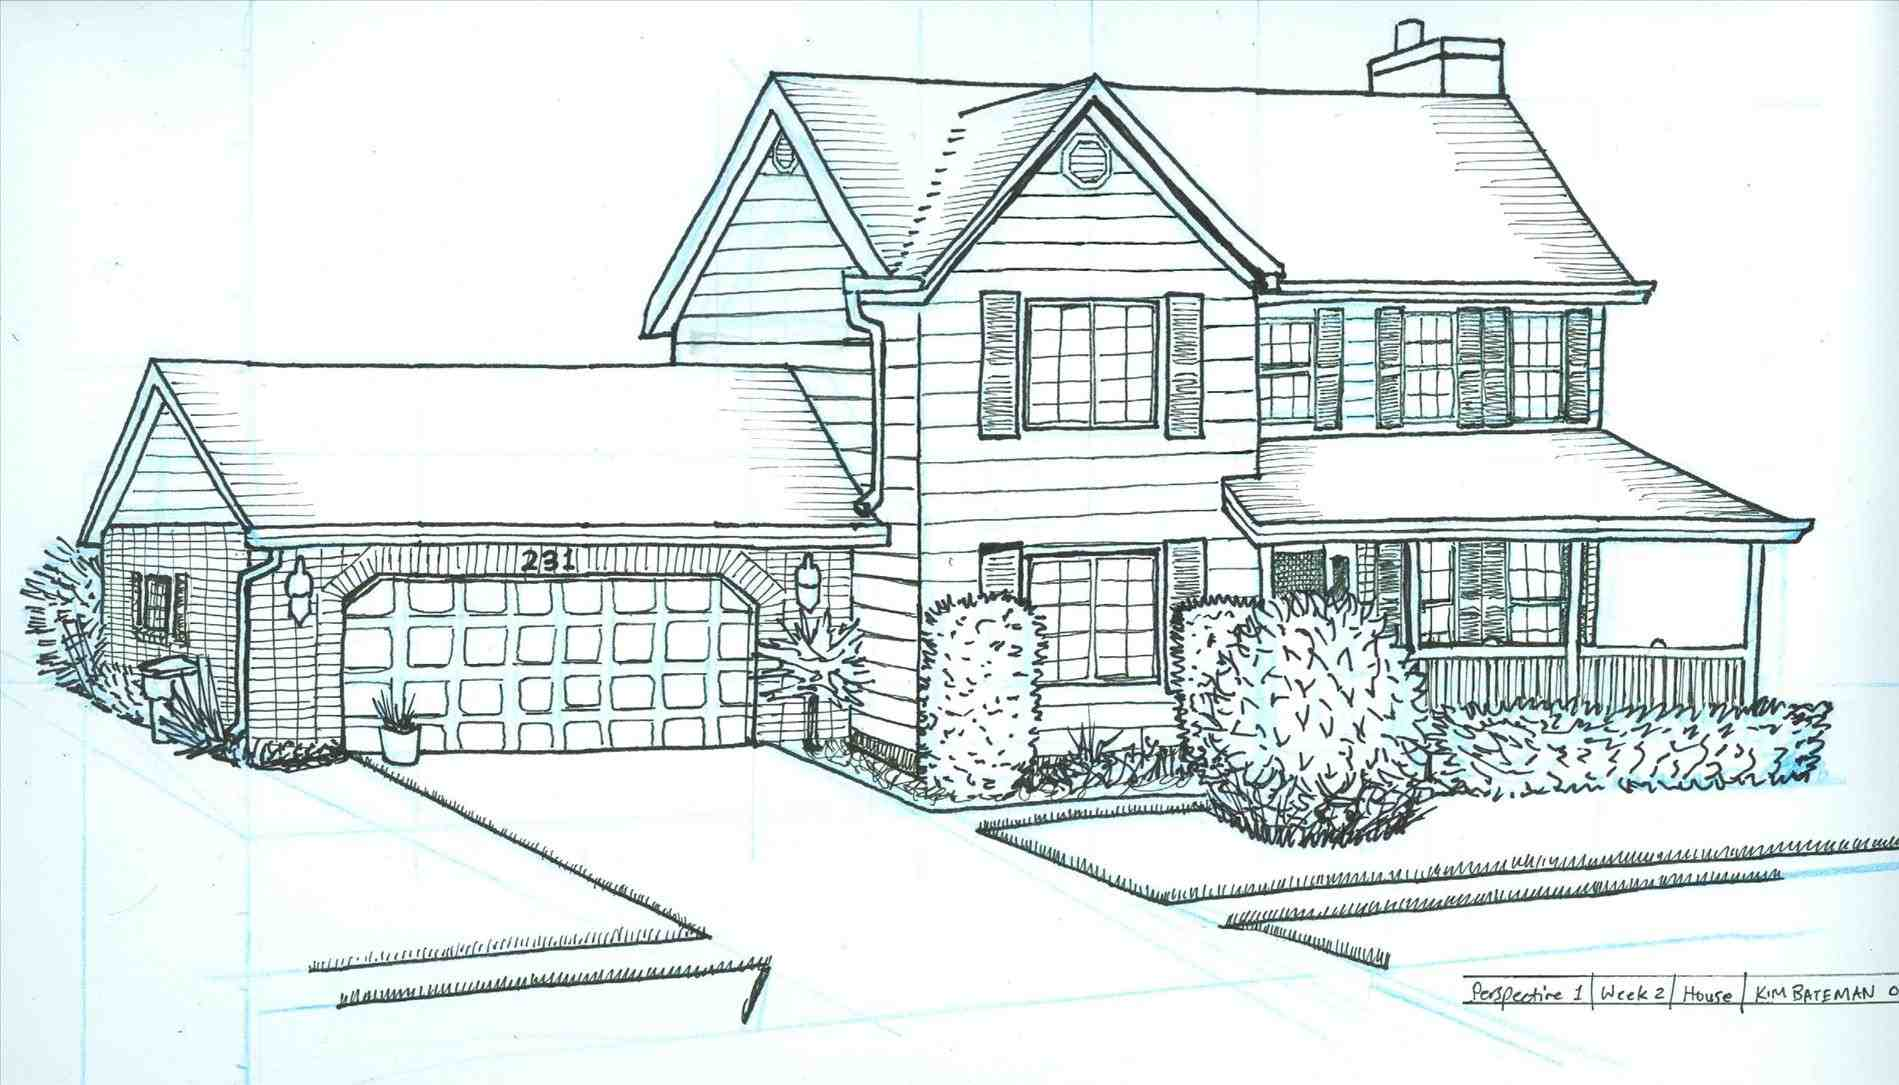 House drawing at free for personal use for Draw your house